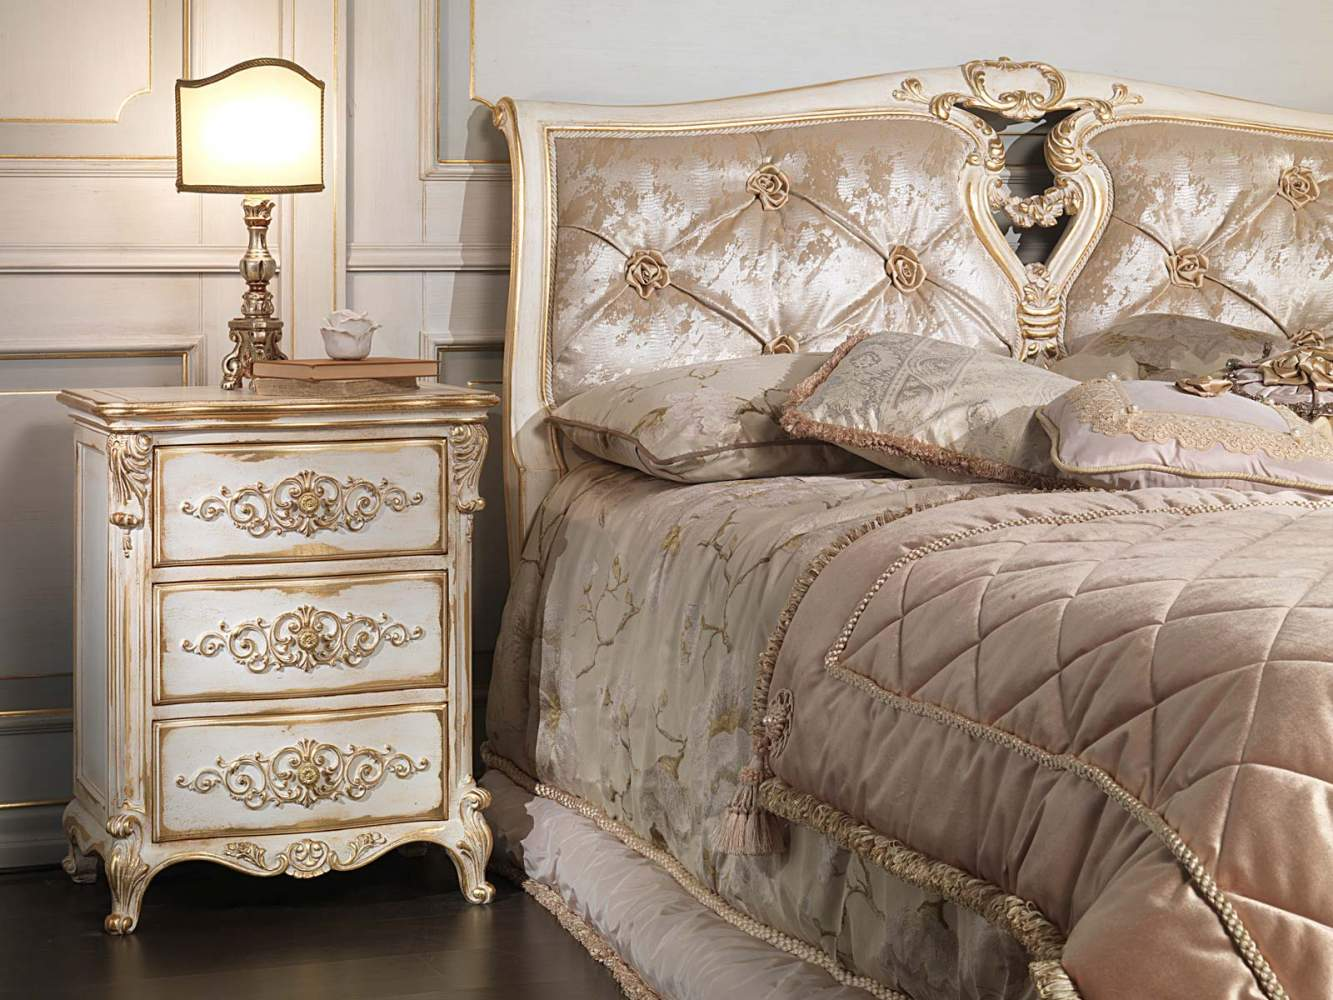 Classic louis xvi bedroom capitonn bed with roses and - Chambre a coucher romantique ...